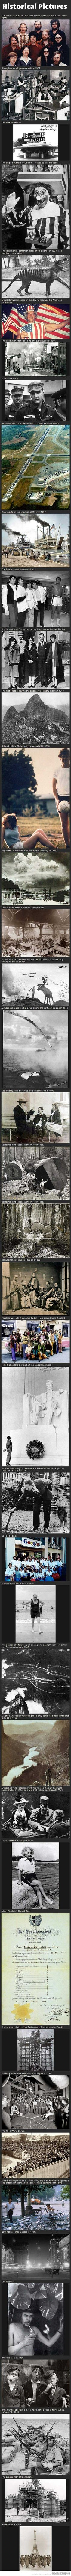 Historic photographs from around the world. They really make you think.